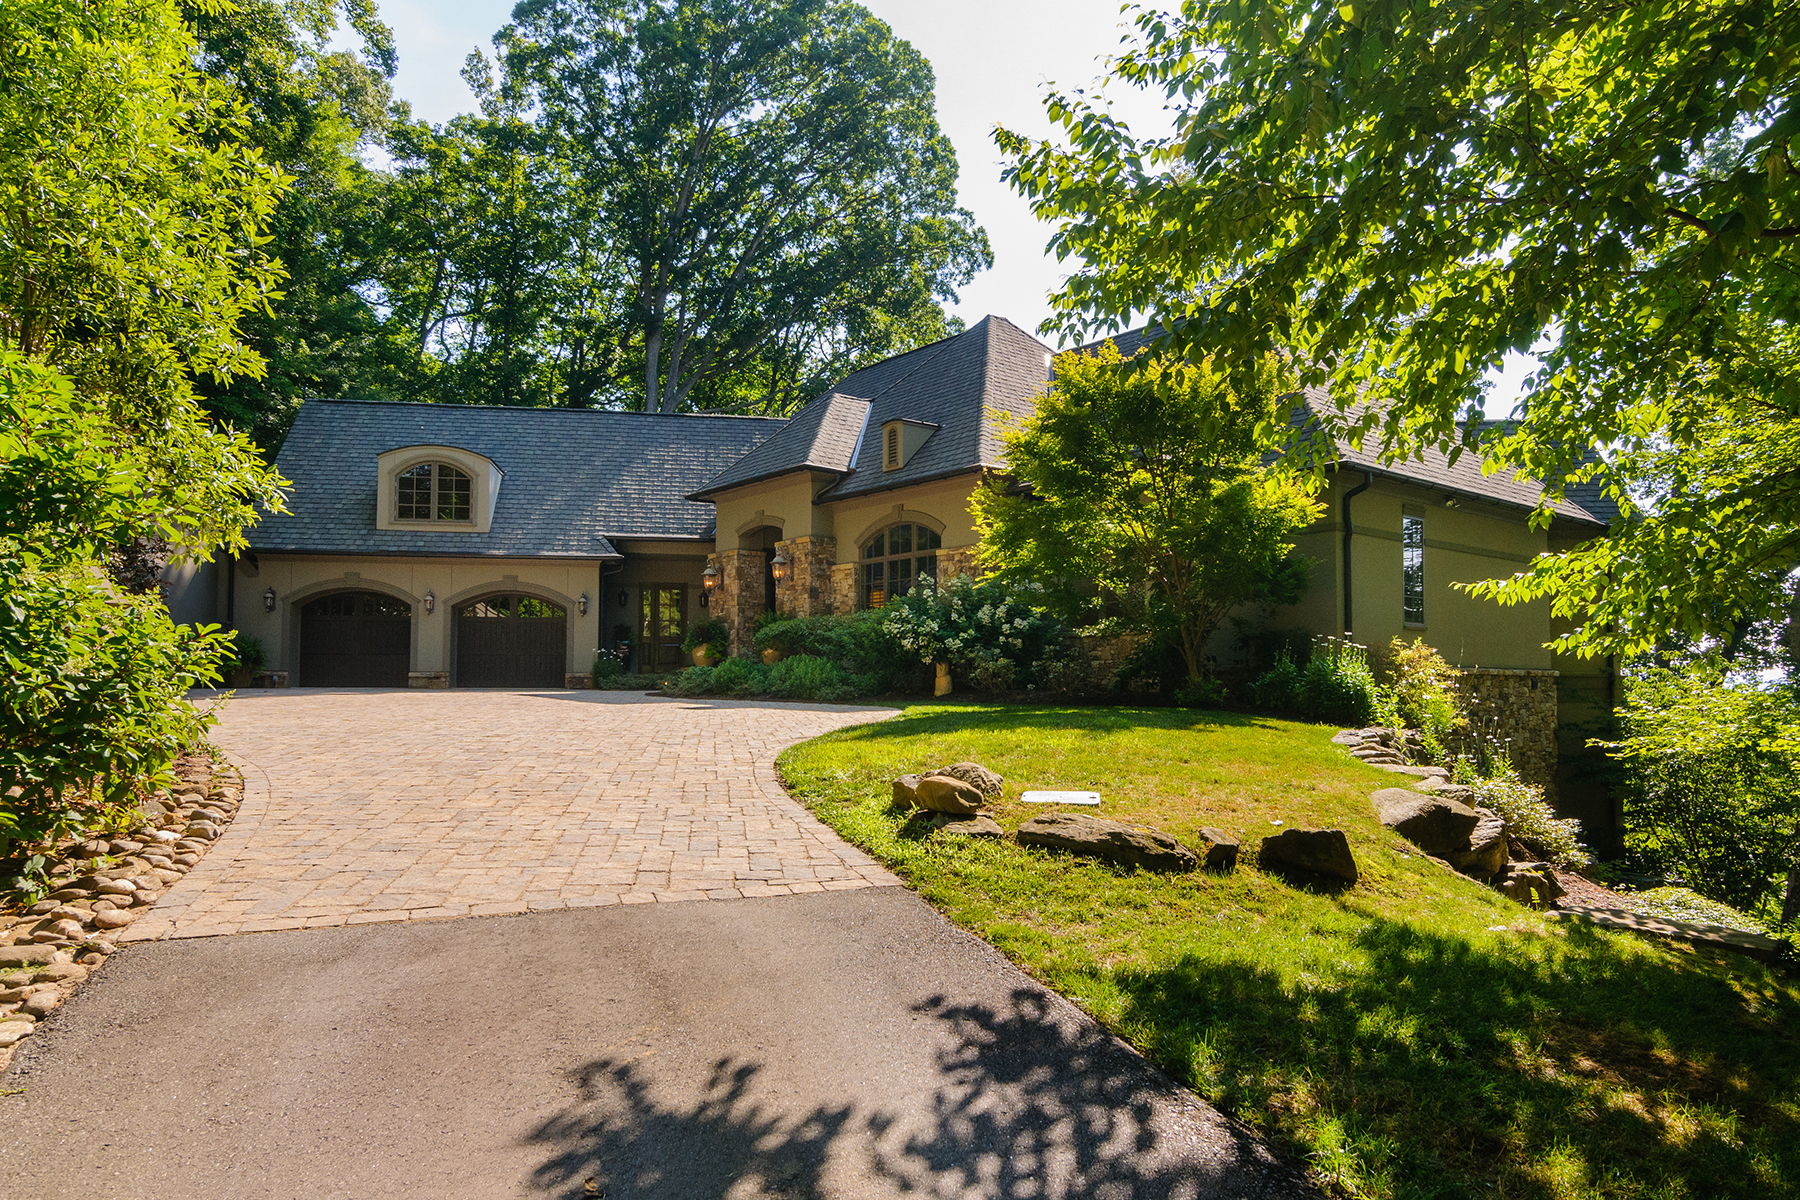 Single Family Home for Sale at THE CLIFFS AT WALNUT COVE 11 Raven Cliff Ln, Arden, North Carolina 28704 United States